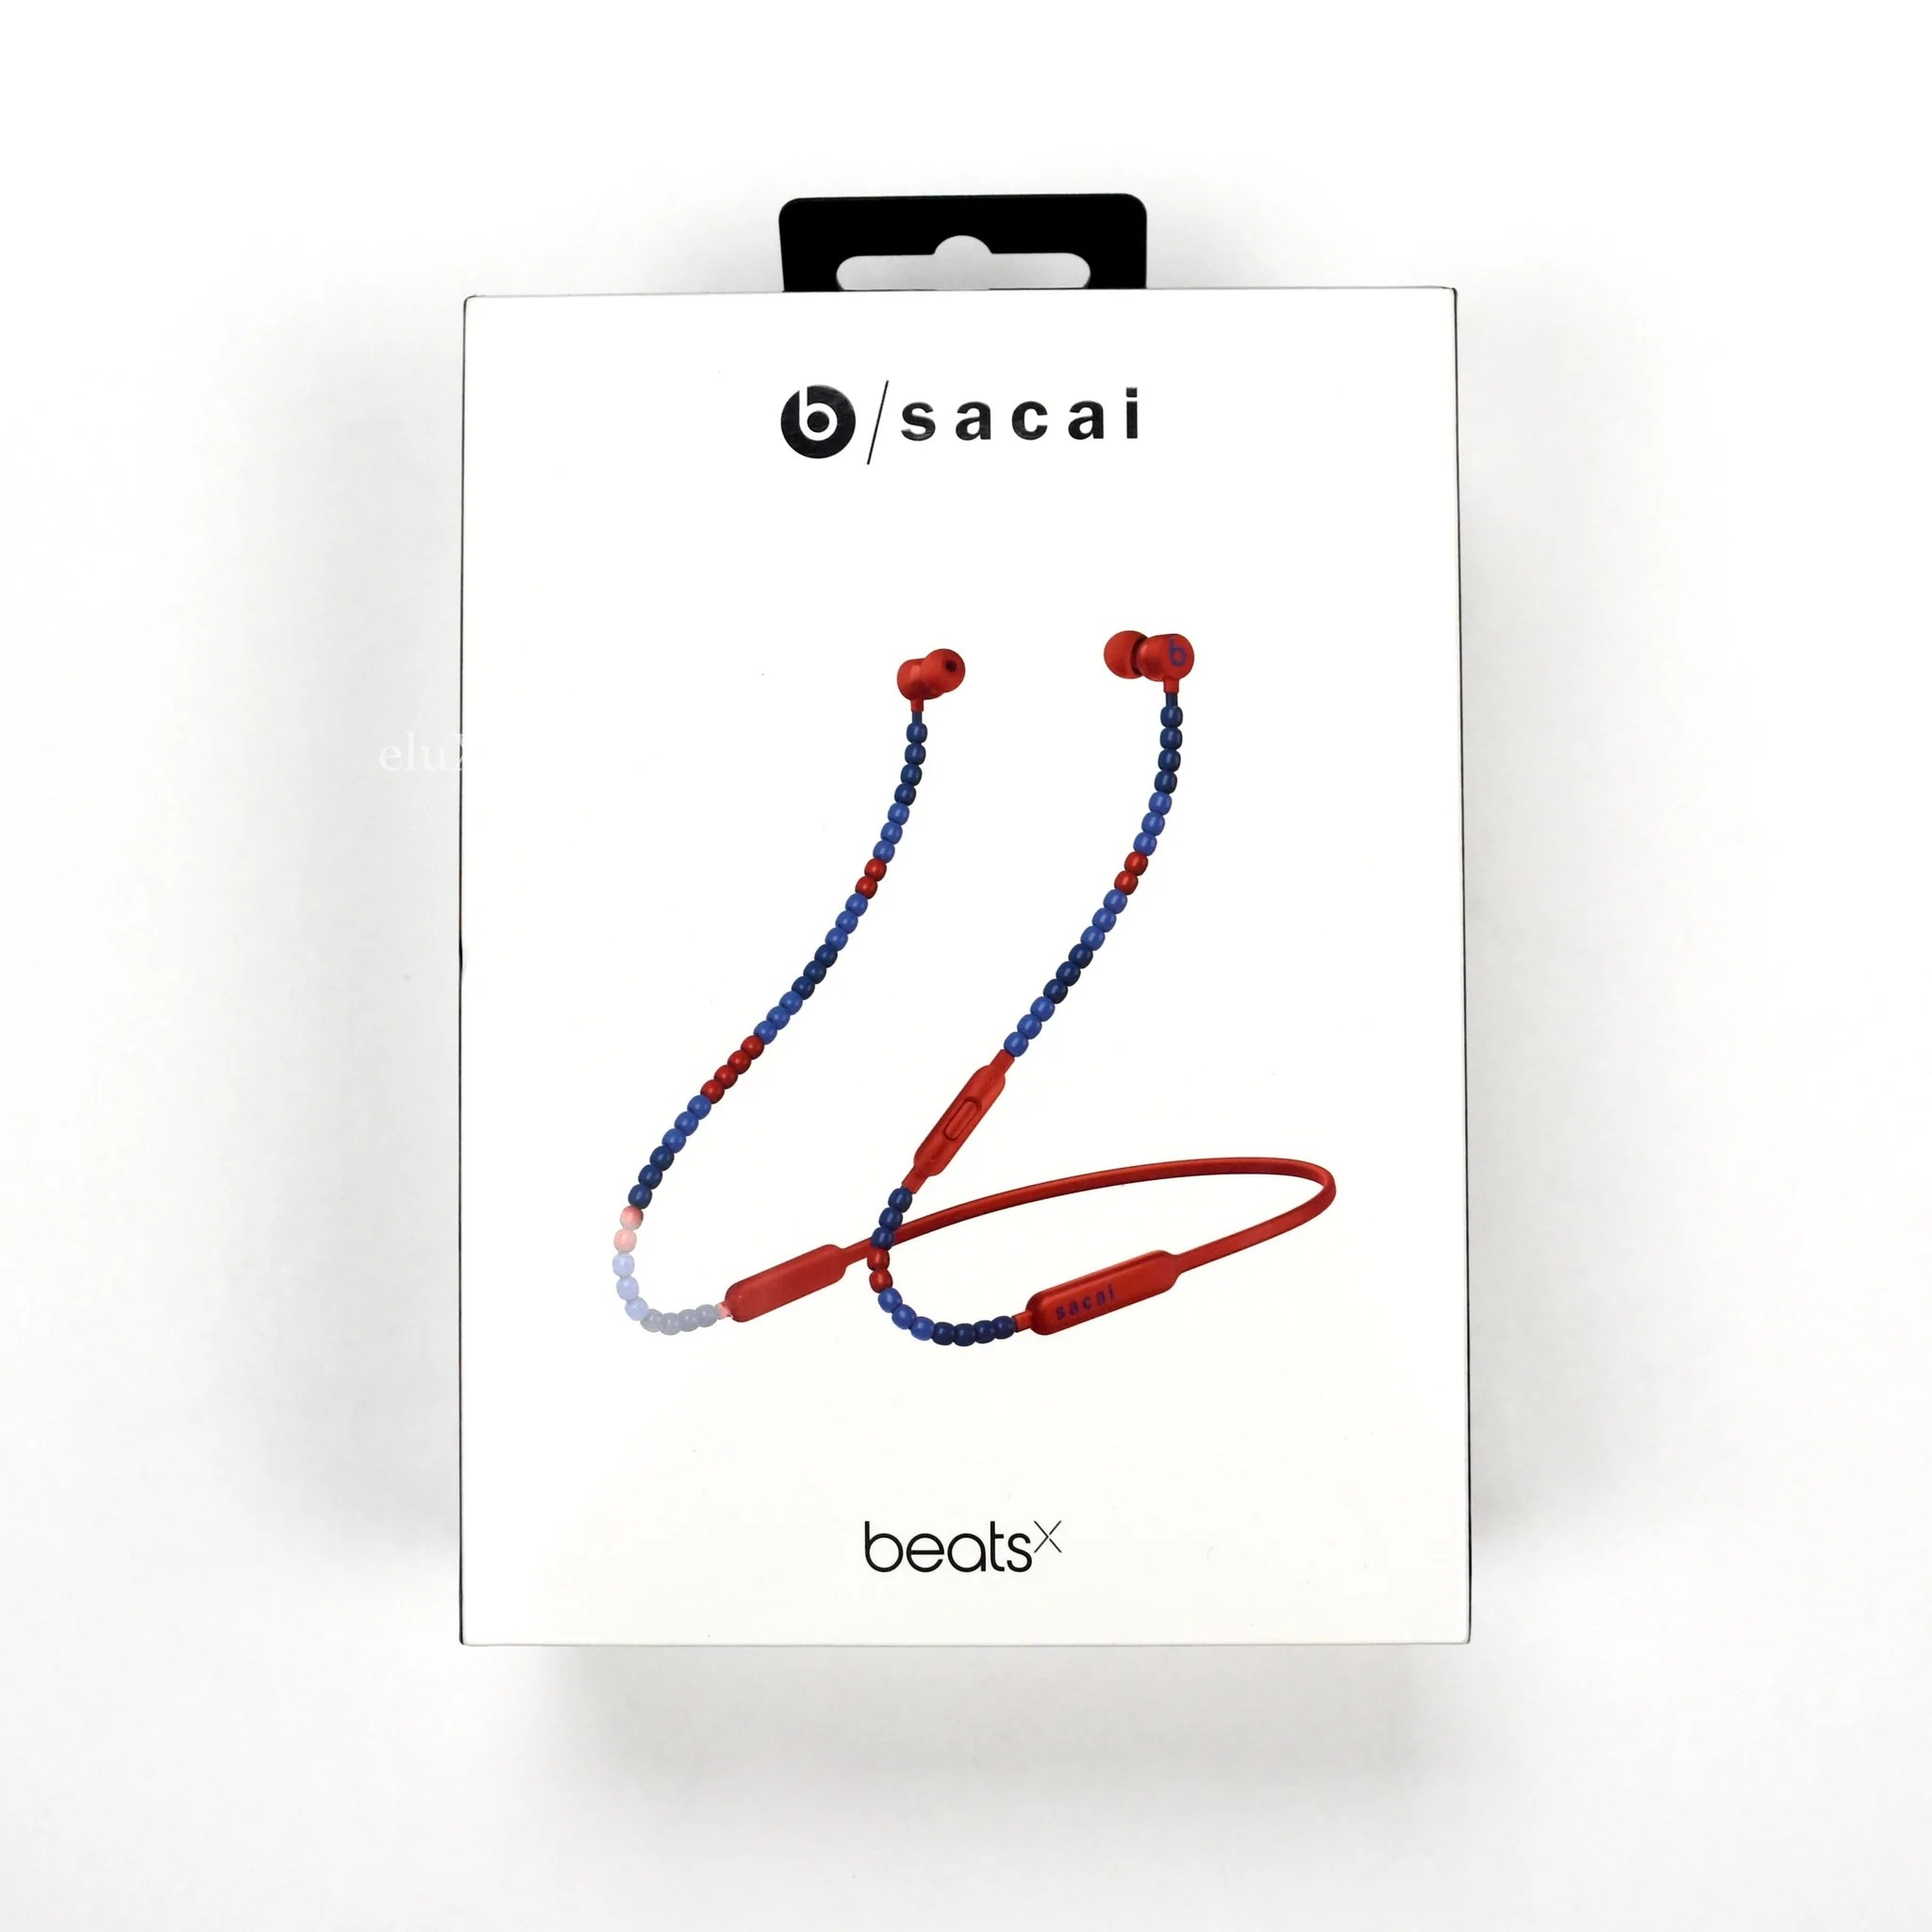 sacai x beats by dre beatsx headphones red  [ 2048 x 2048 Pixel ]